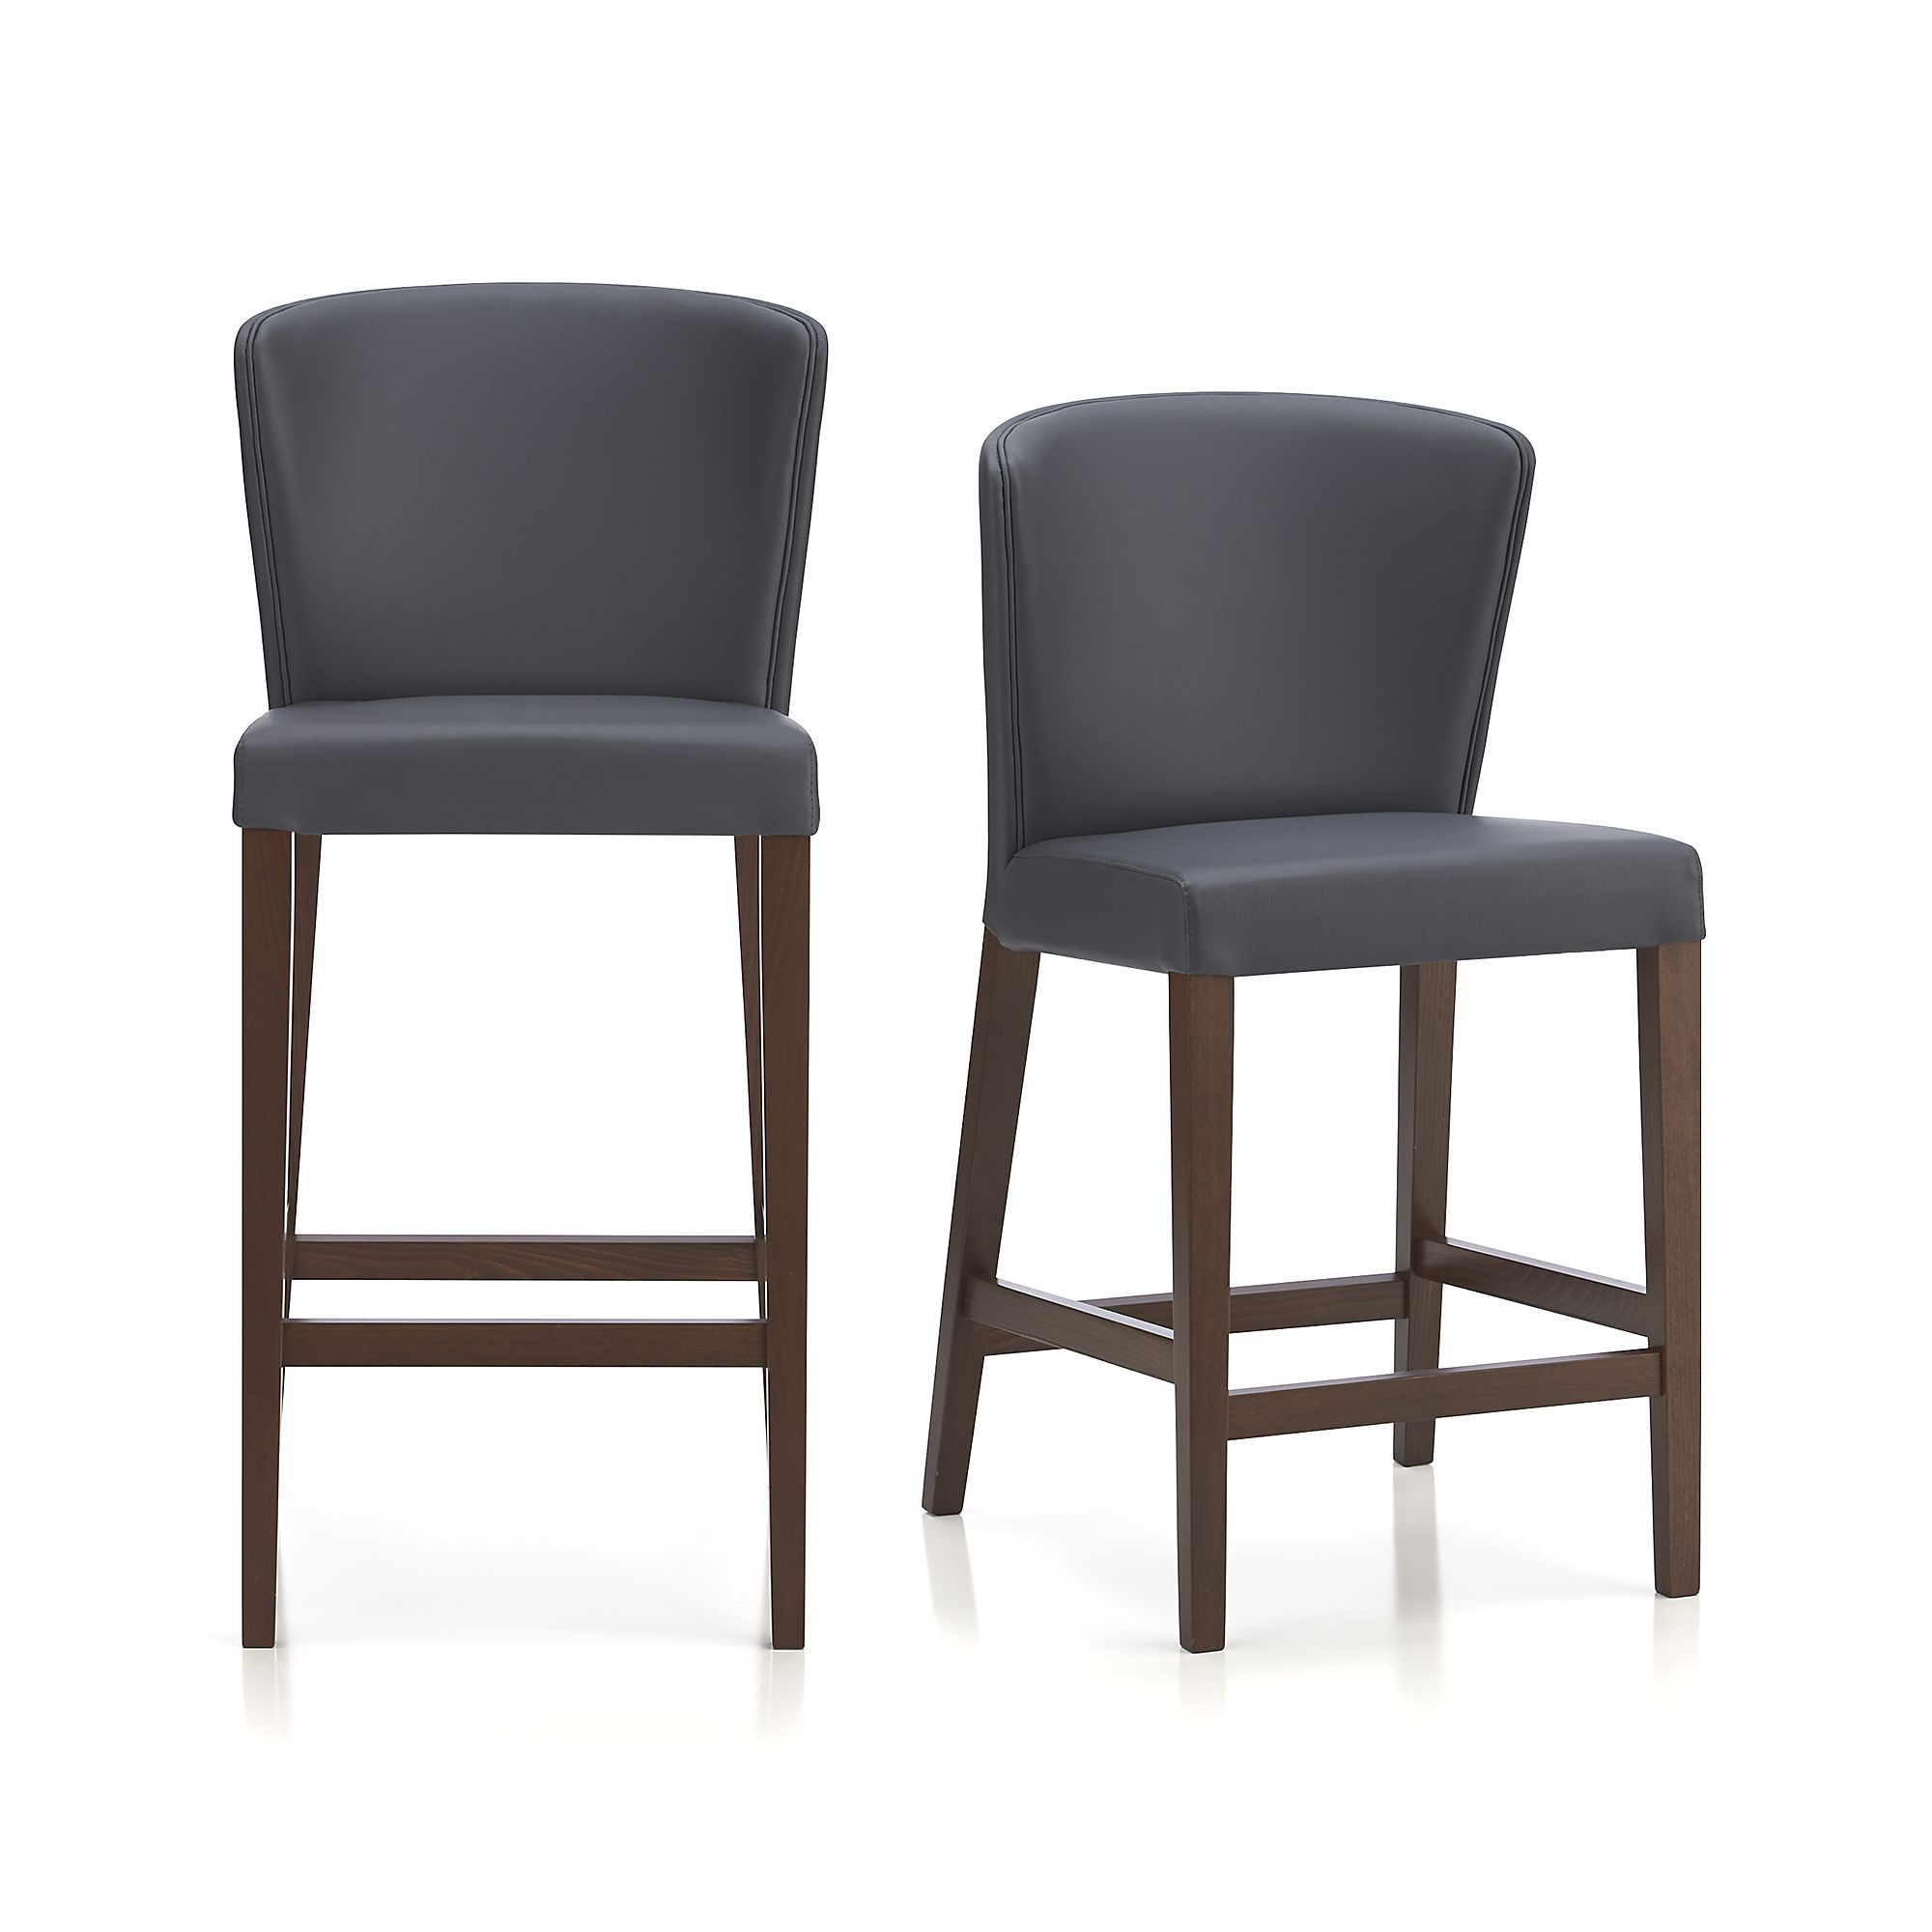 Awesome Curran Grey Bar Stools Crate And Barrel Dining Areas Dailytribune Chair Design For Home Dailytribuneorg